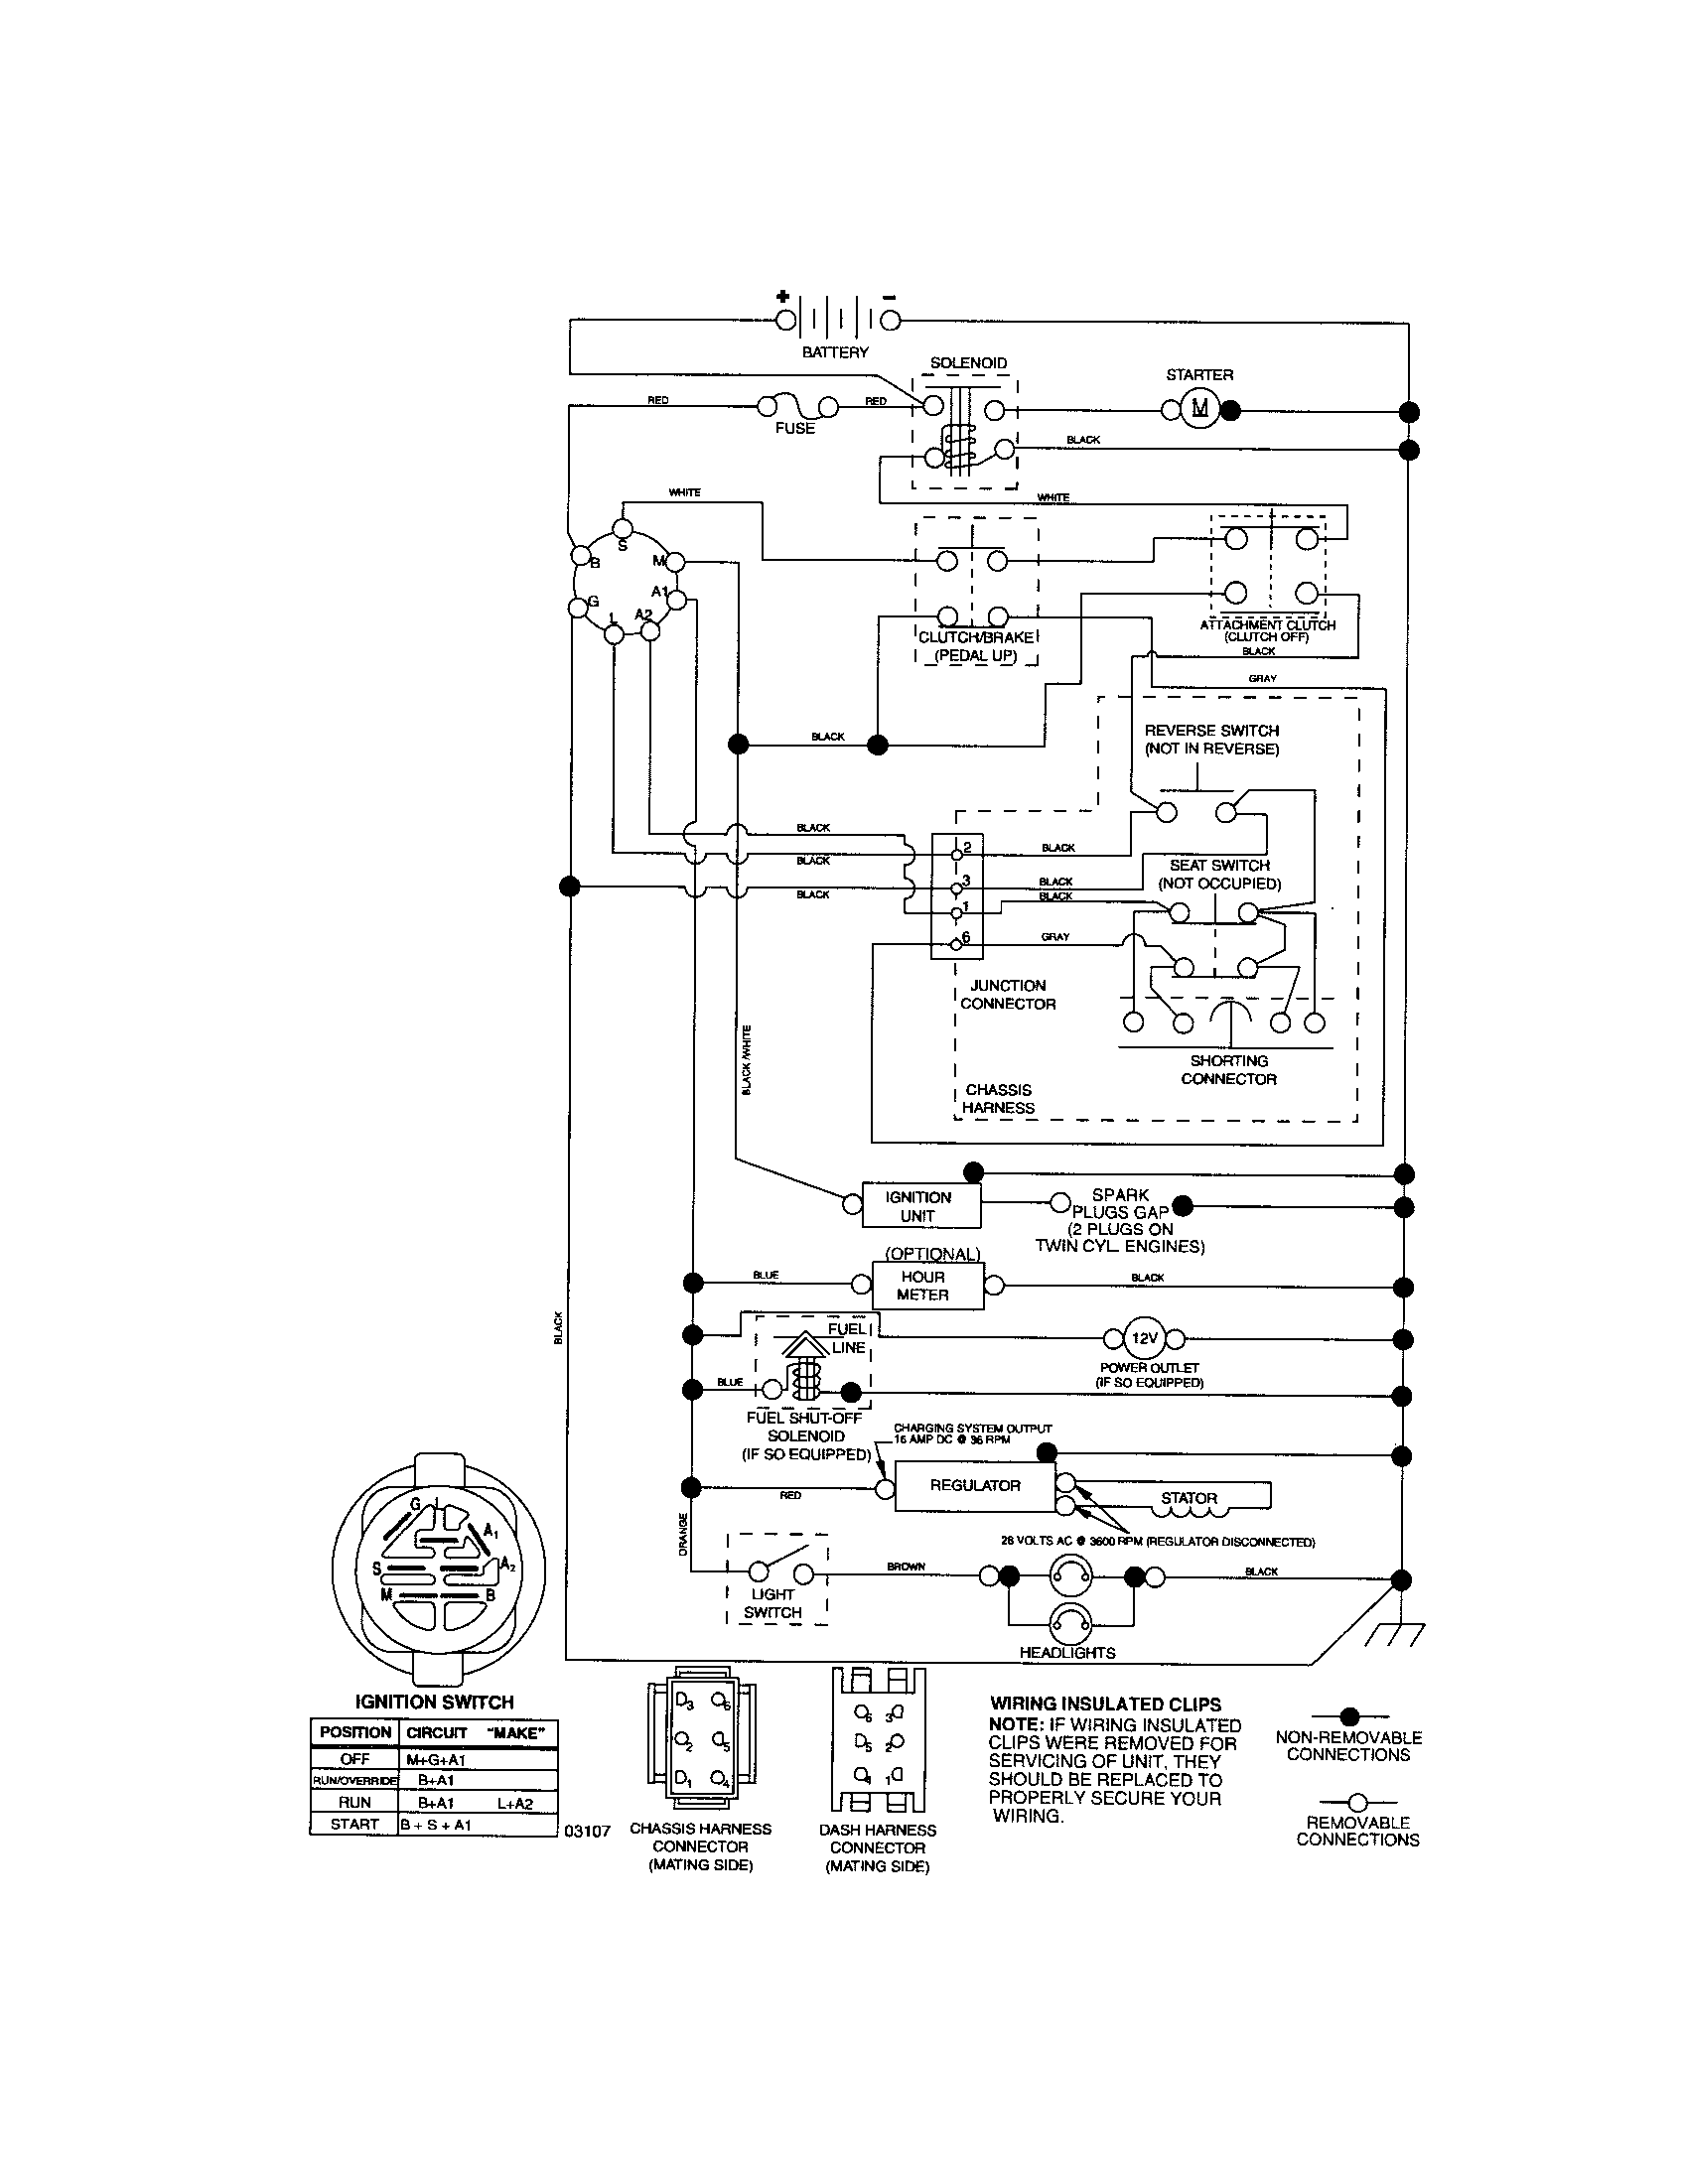 6af5f1447fd13c8443376822ddc1e105 craftsman riding mower electrical diagram wiring diagram Universal Wiring Harness Diagram at mifinder.co